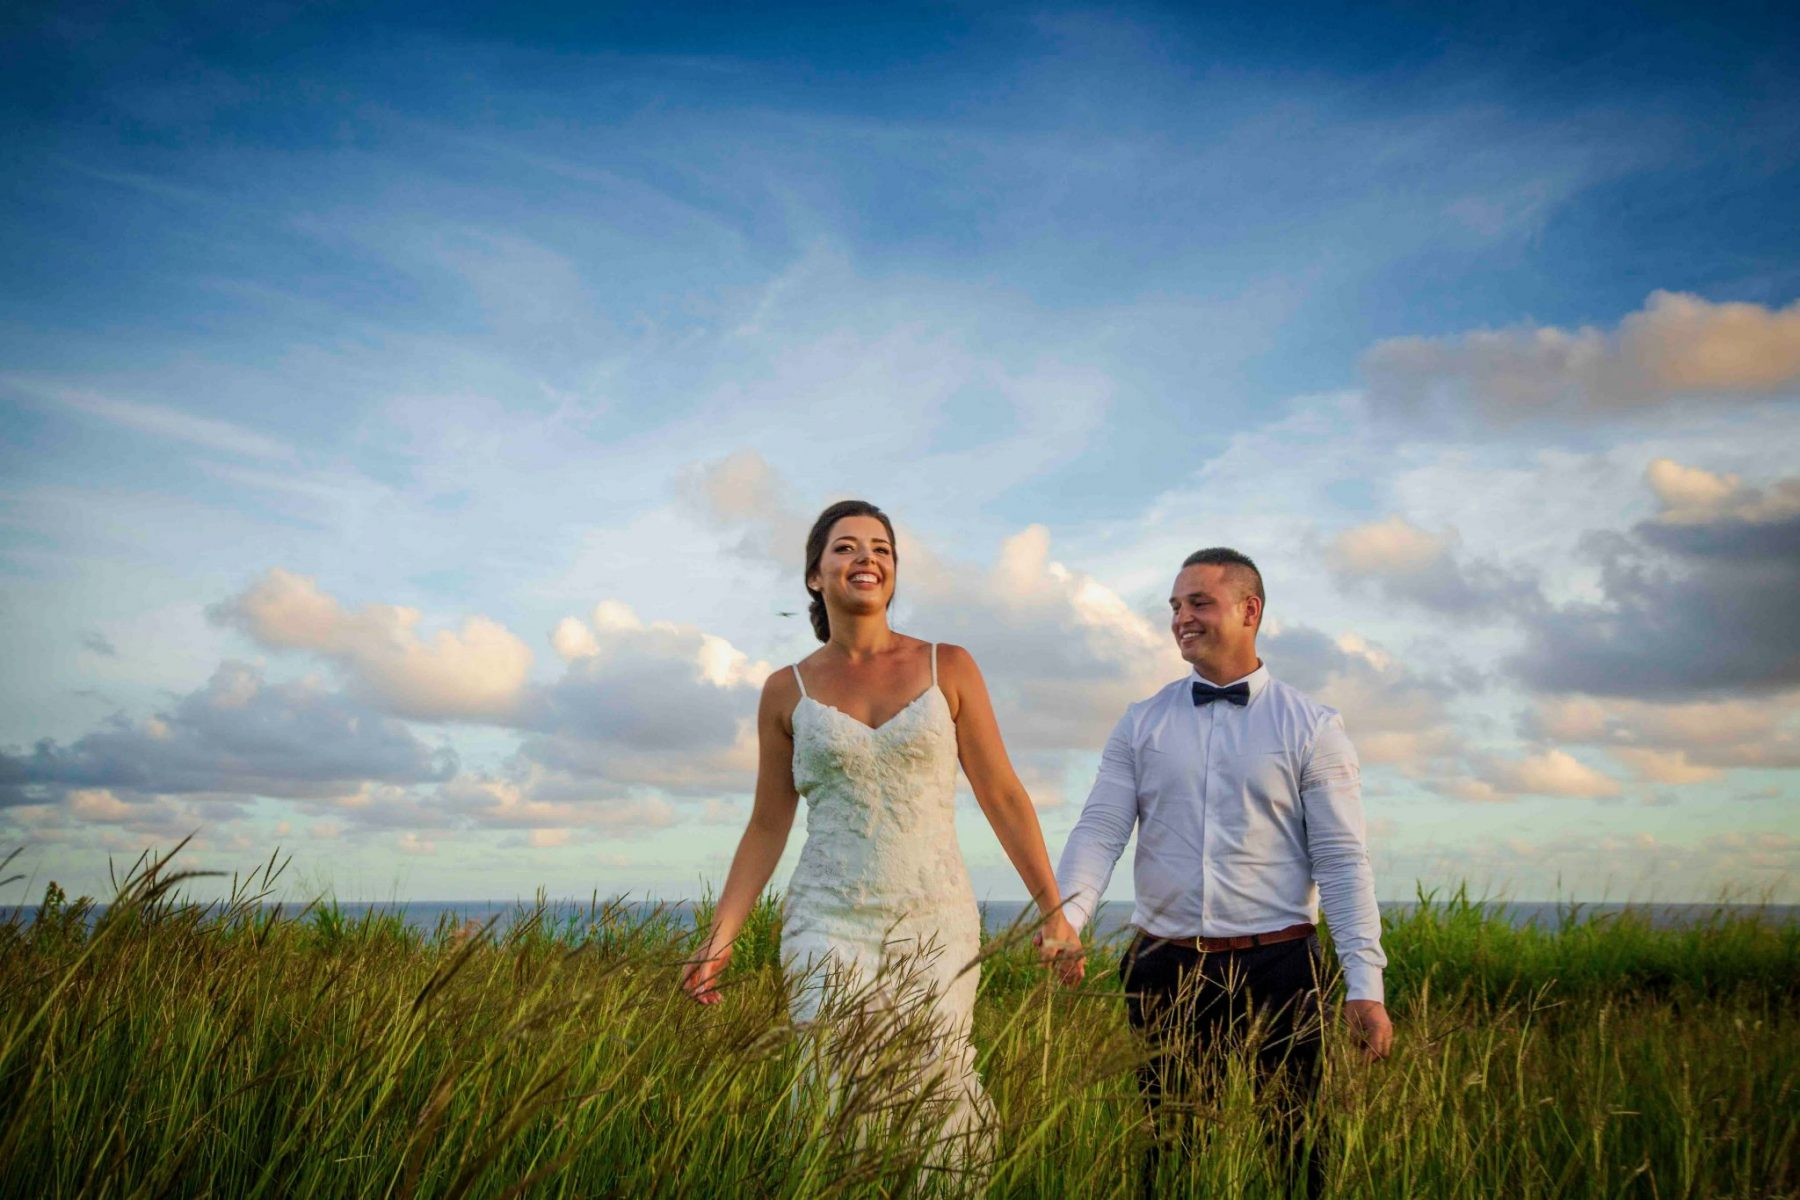 April & Craig - Header Image